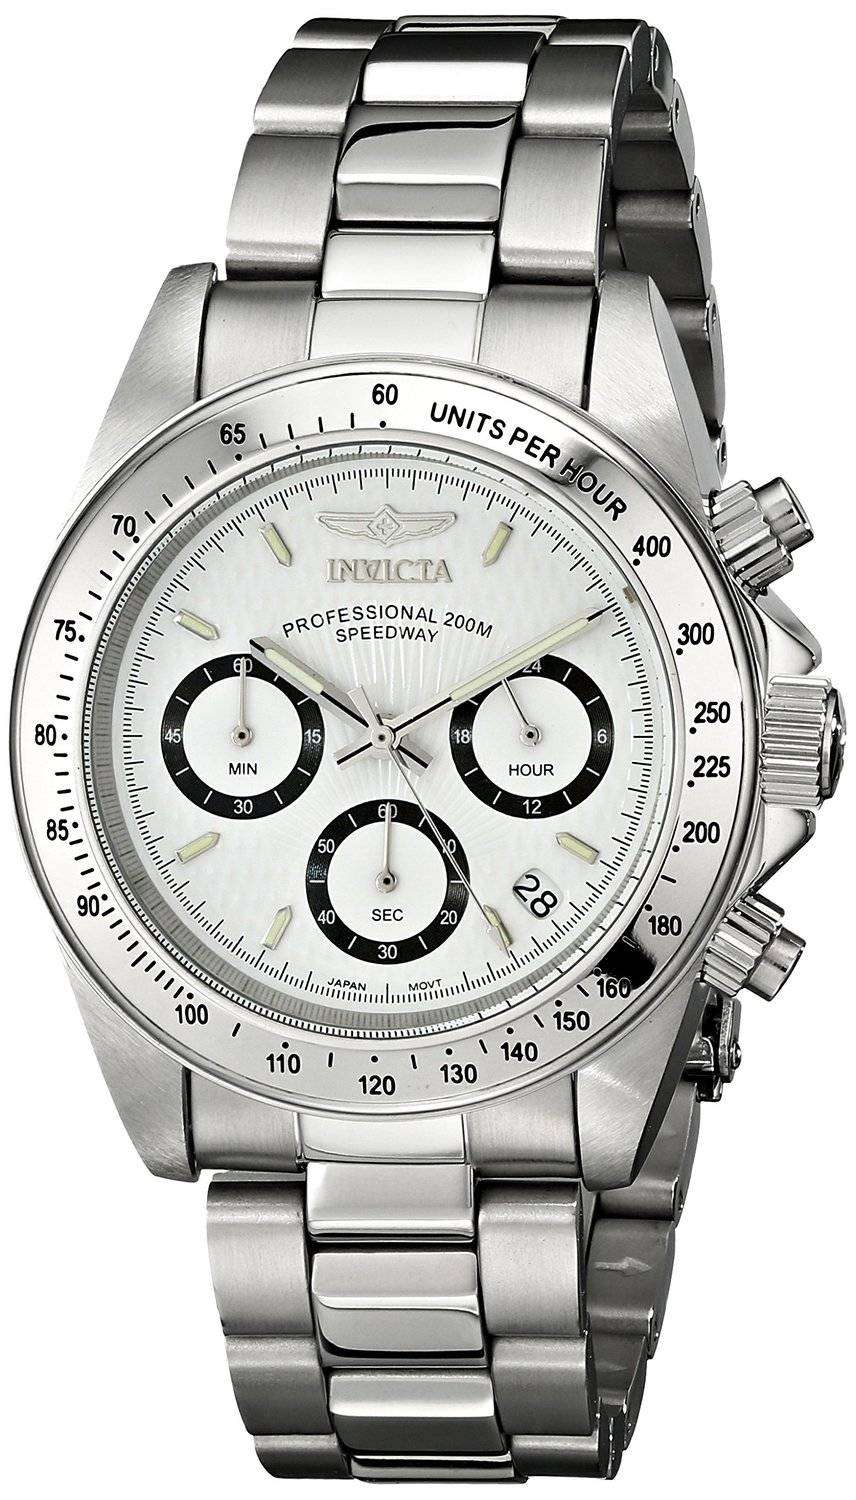 Invicta Speedway 200M Chronograph White Dial INV9211/9211 Mens Watch - DownUnderWatches